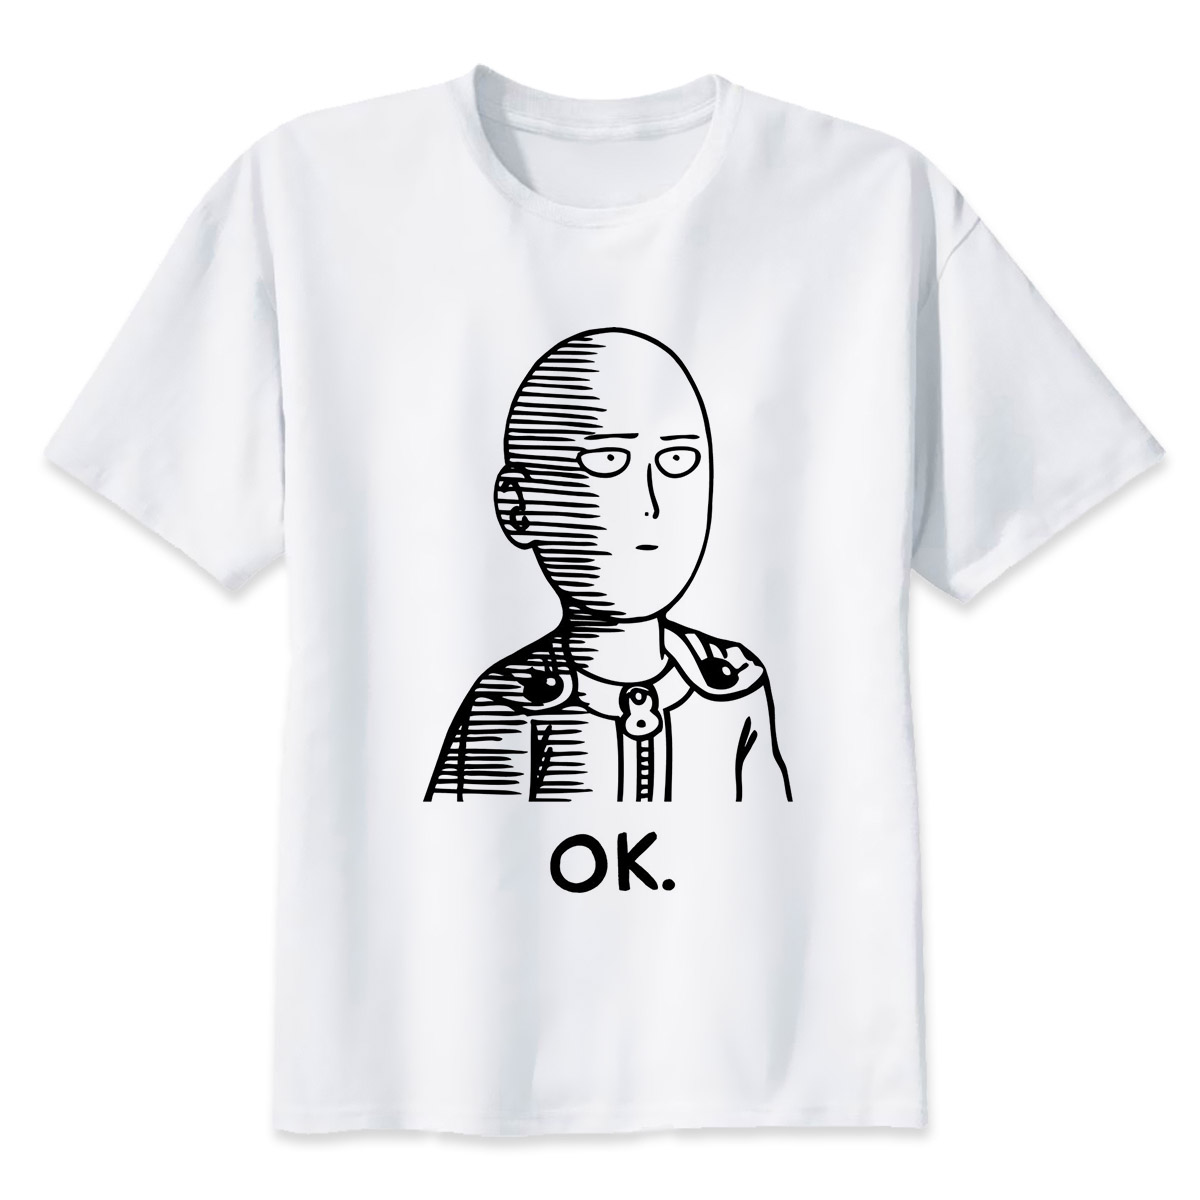 One Punch Man T-shirt Men Mens Casual T Shirts Brand Clothing Man's Short Sleeve T-Shirt Tops Tees Plus Size